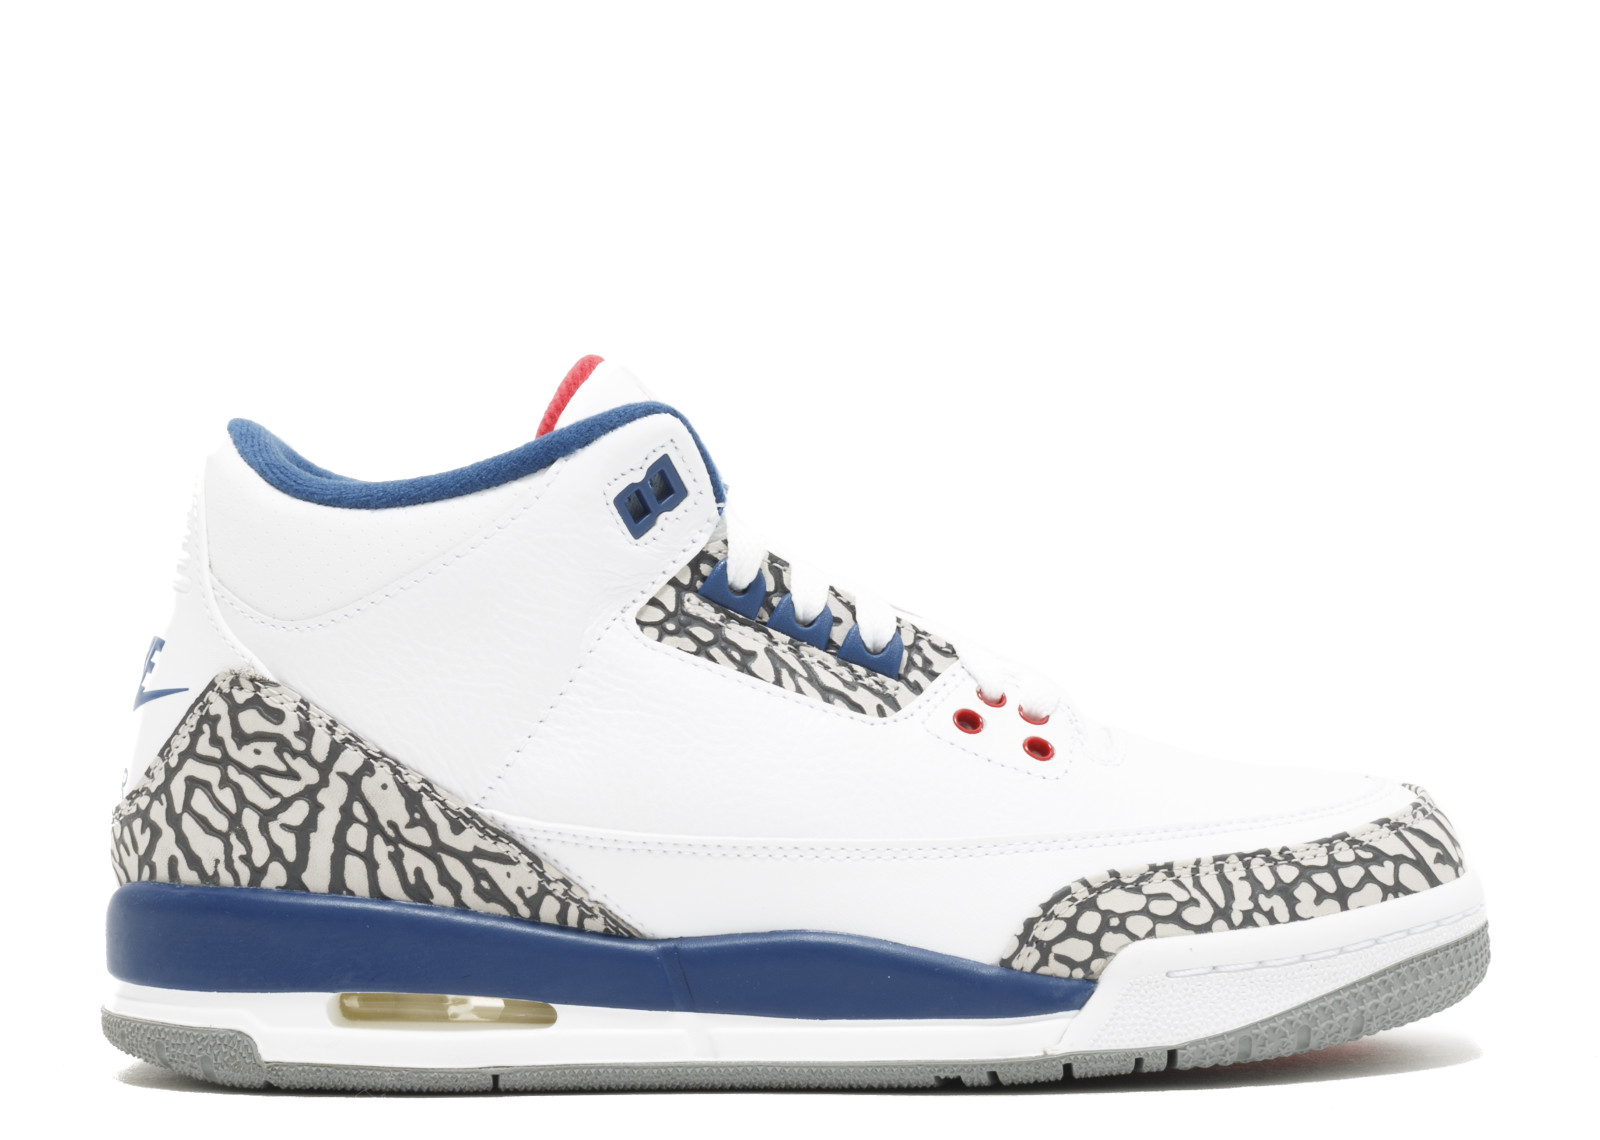 b5924a2e395521 Air Jordan - Unisex - Air Jordan 3 Retro Og Bg (Gs)  True Blue 2016 ...